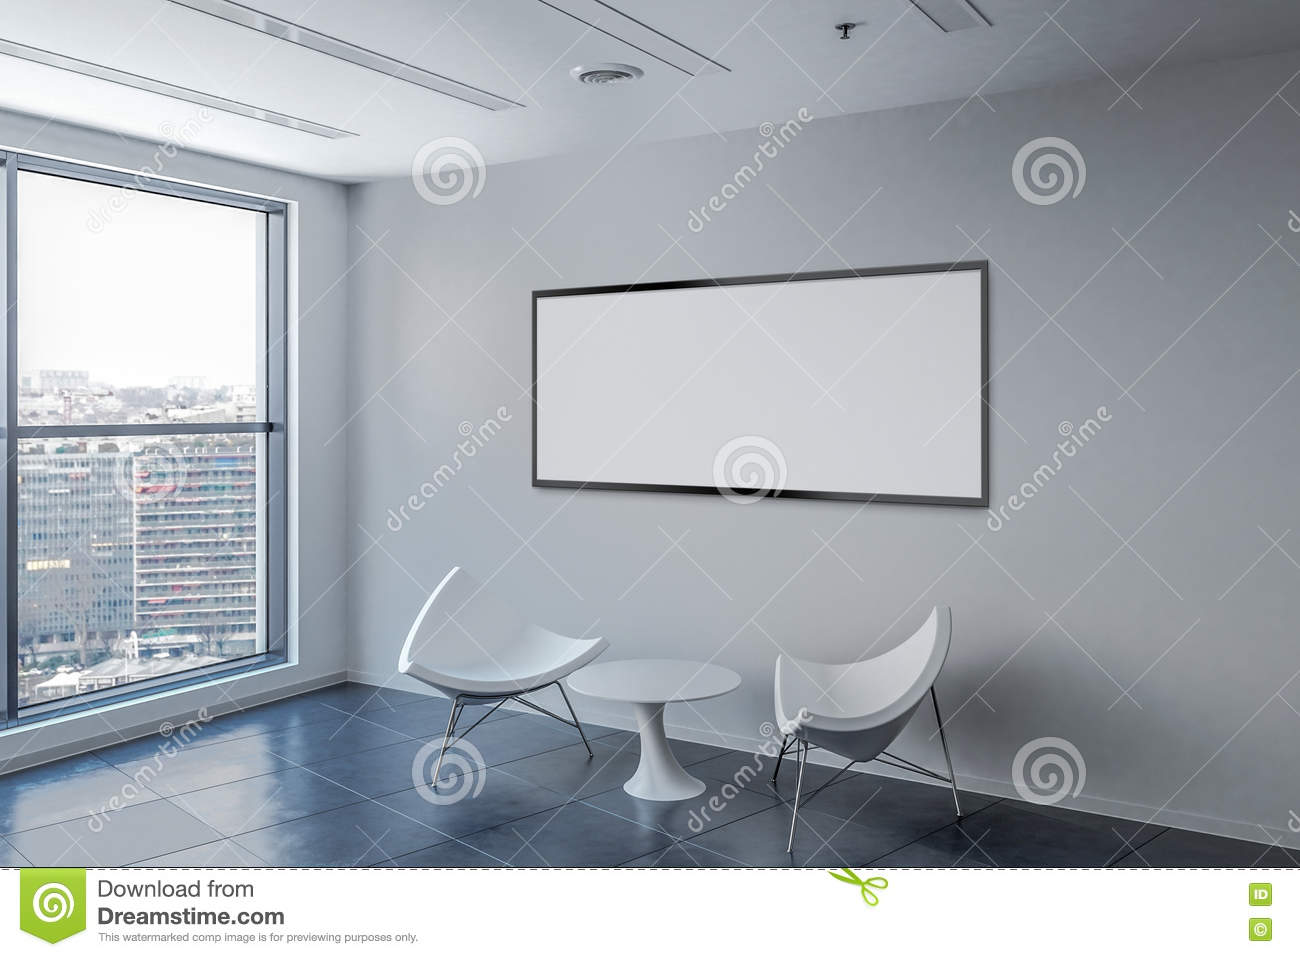 Waiting Room With Blank Picture Frame On The Wall. Stock ...